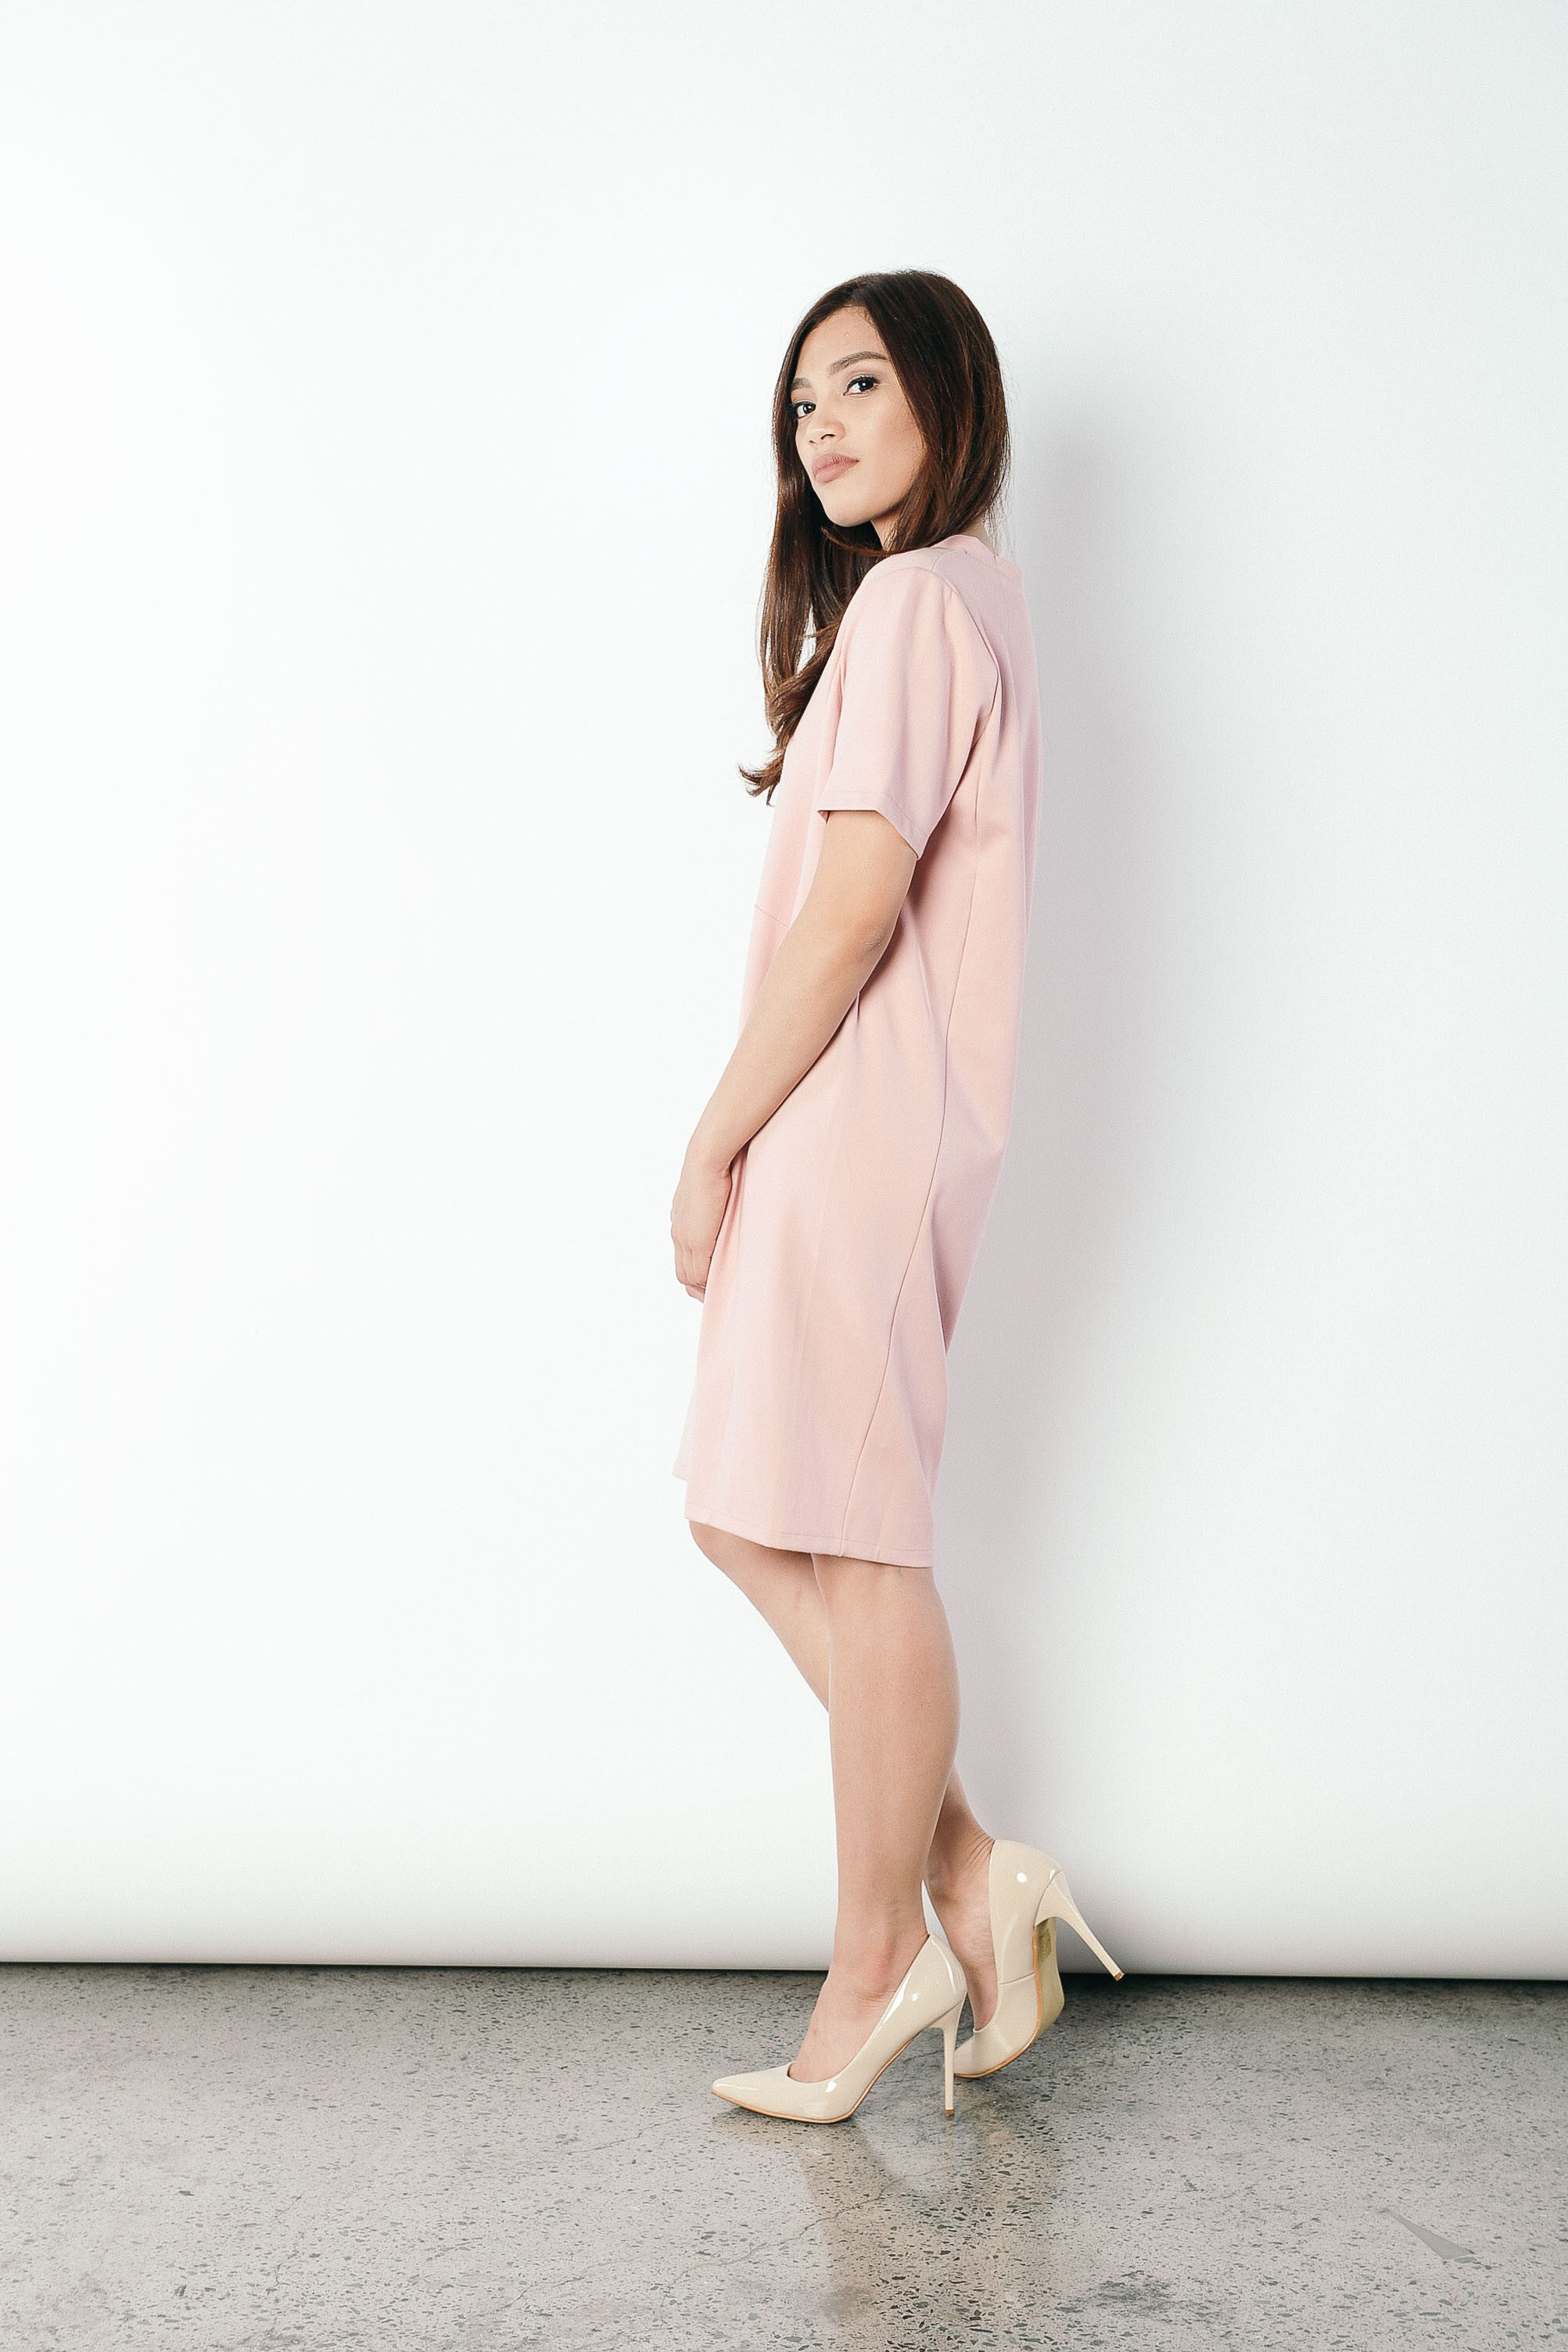 Franca V-neck T-shirt Dress in Pink